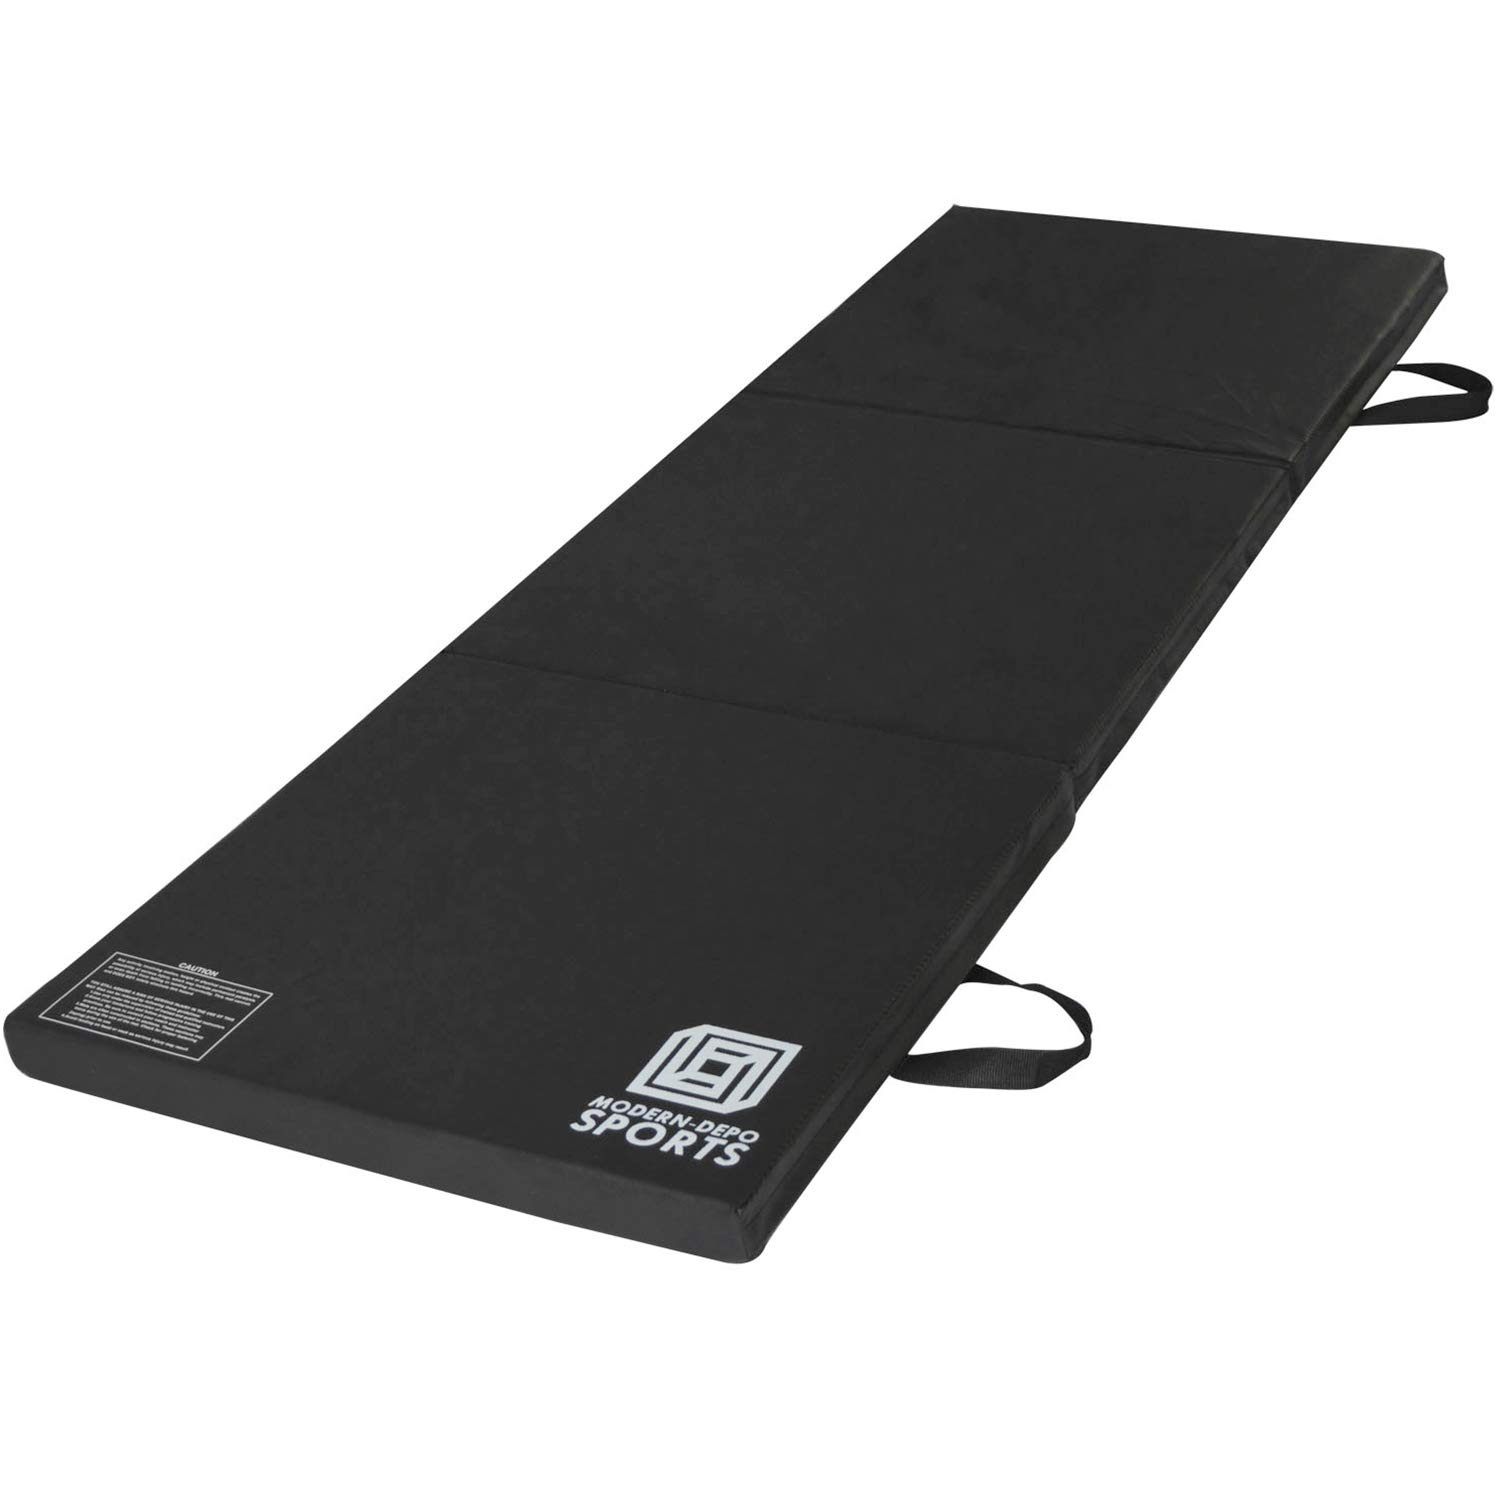 Modern-Depo Gymnastics Mat Tri-Fold 6'X2'X2 Thick with Handle, Waterproof Cover, 100% EPE Core (Black) by Modern-Depo (Image #2)